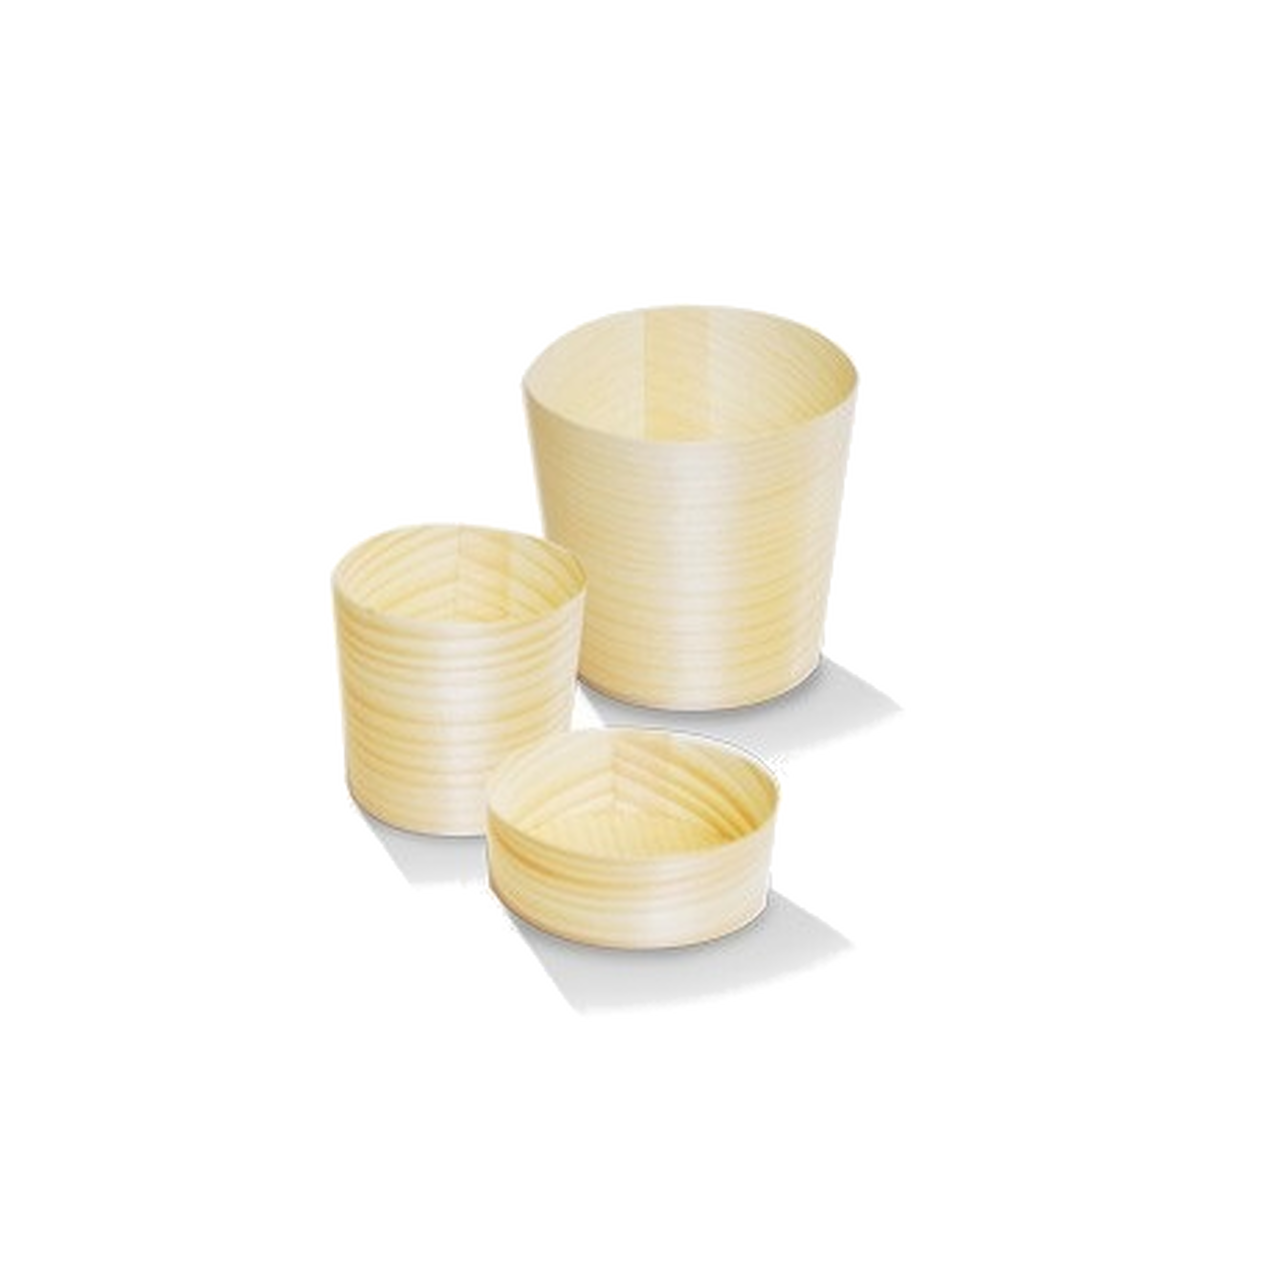 Large Wooden Gourmet Pine Cups